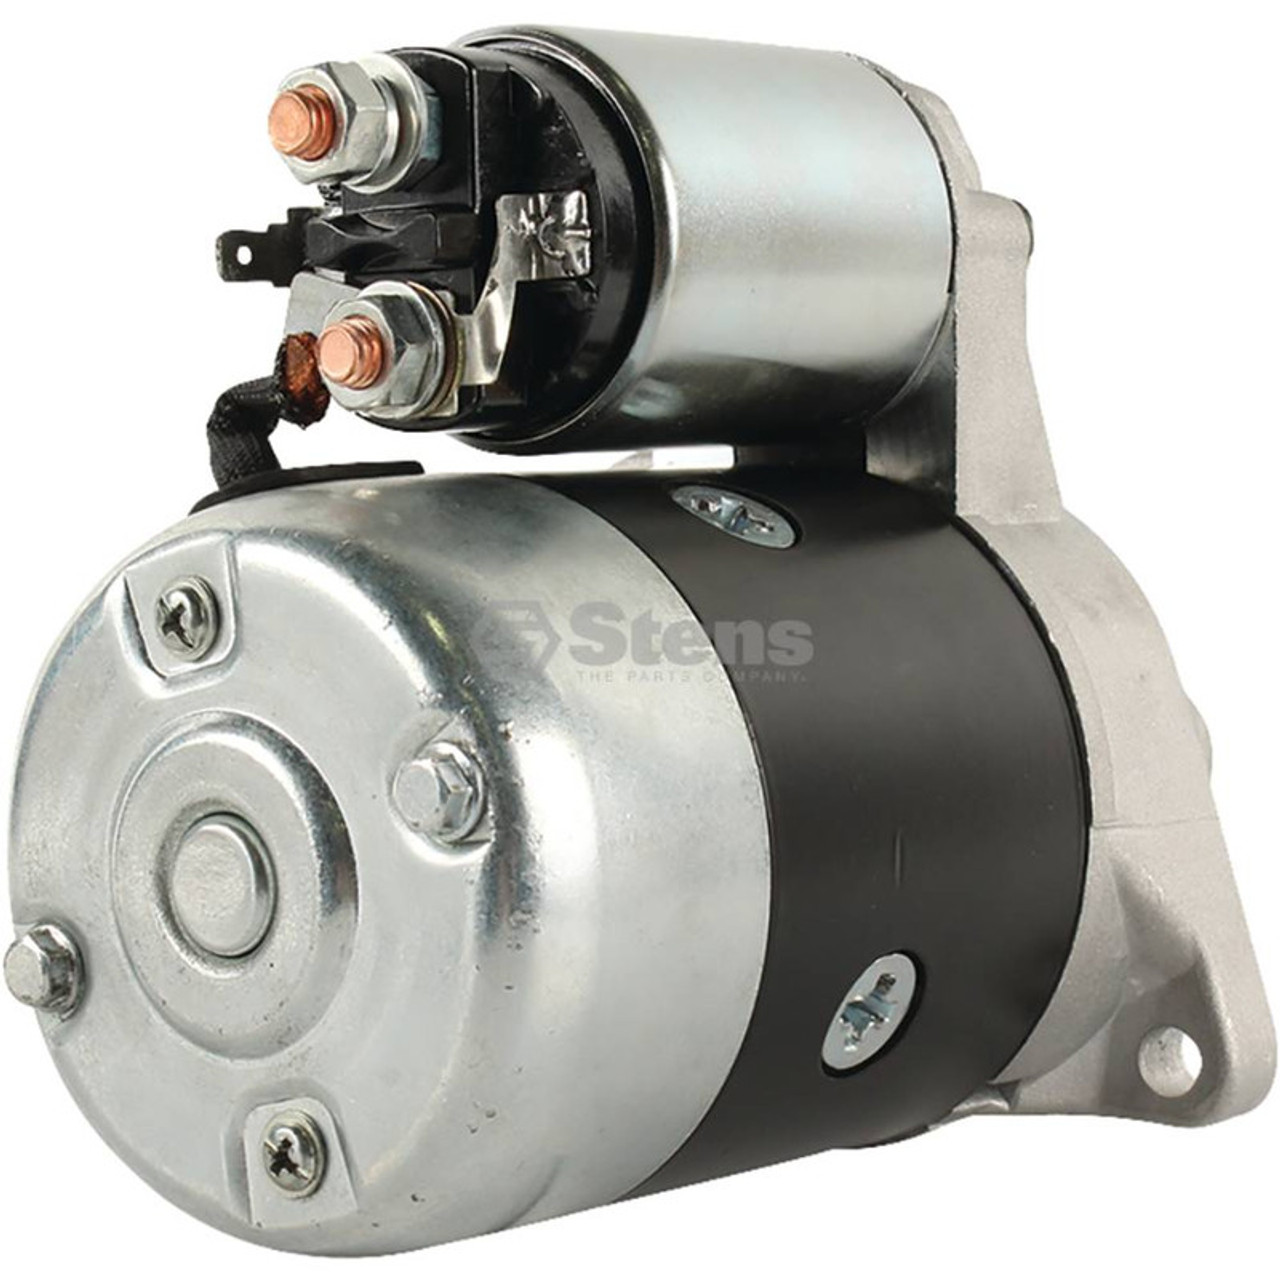 Electric Starter for Kubota KH007, T1600H, Z482, 1900763011, 1983763010, 1983763011, 1983763012, 1983763013, 1983763014, KEARS19837, 19007-63011, 19837-63010, 19837-63011, 19837-63012, 19837-63013, 19837-63014